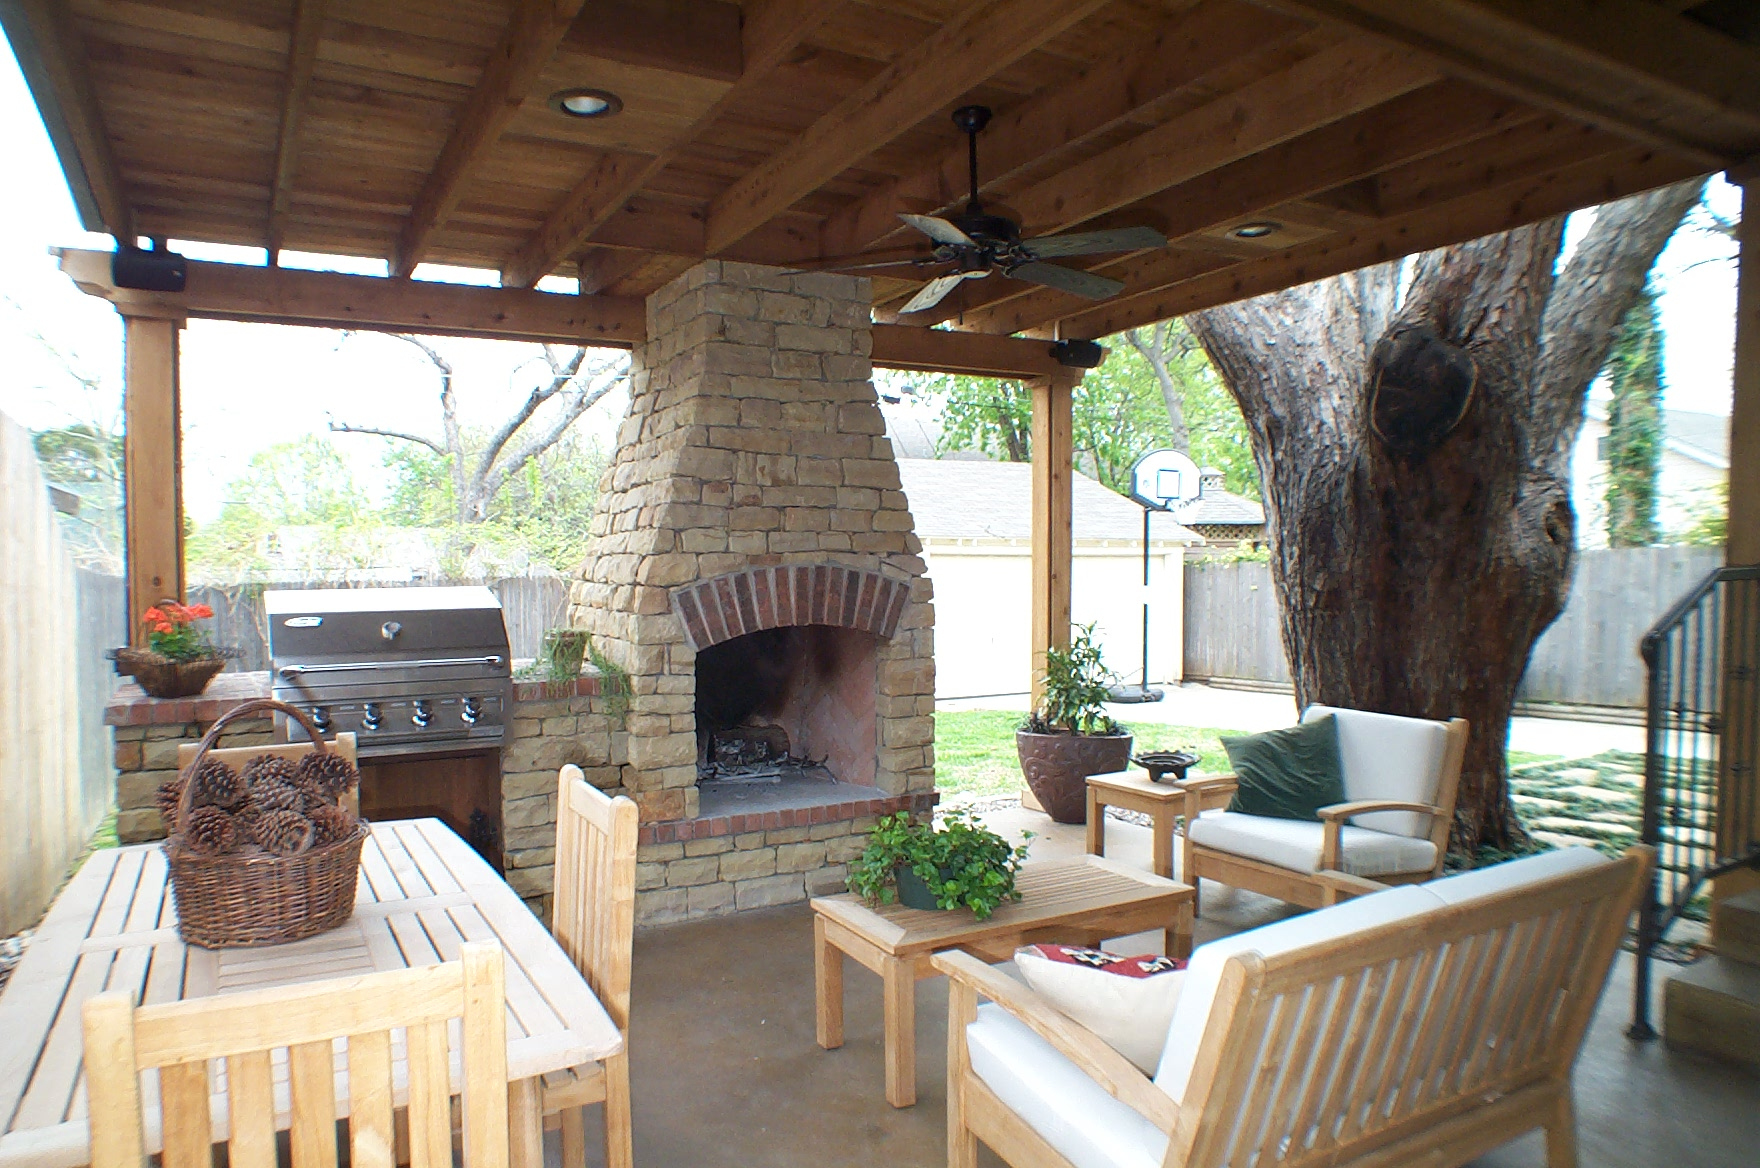 Outdoor Living Design | Fort Worth, TX |Sunrooms, Outdoor Living ...